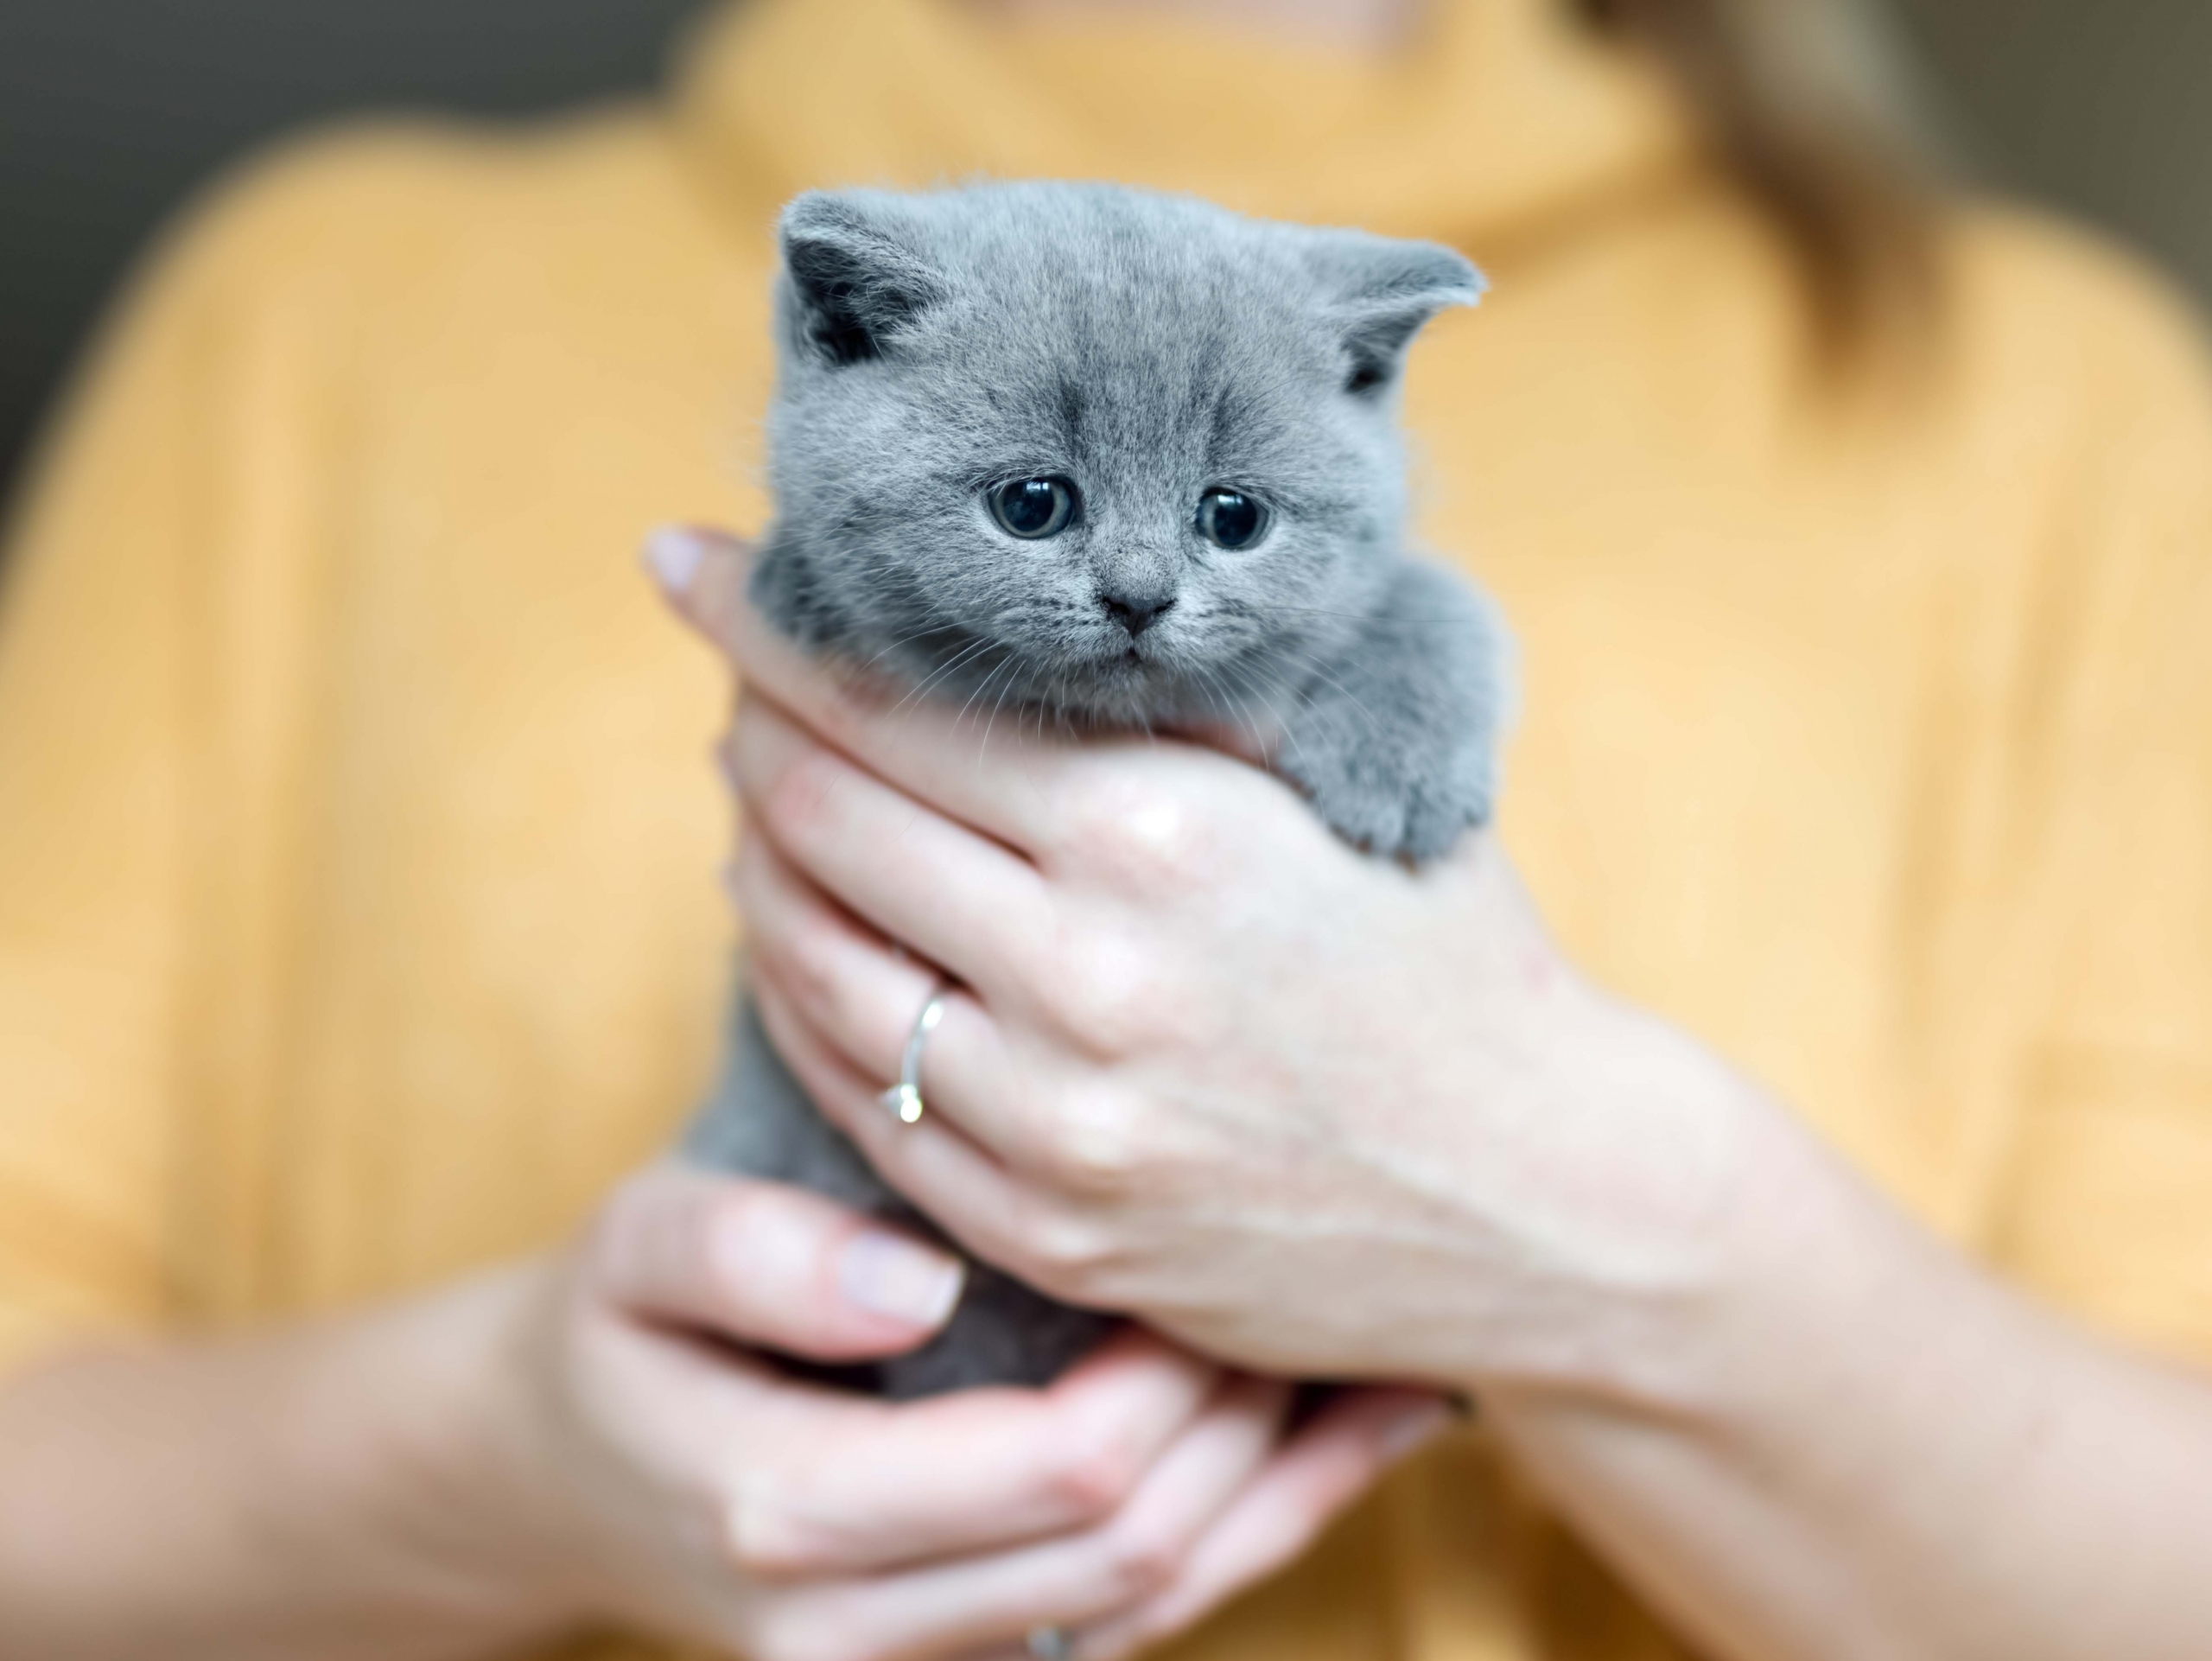 Grey adorable kitty held by a woman standing in a background. Furry love. British shorthair cat.